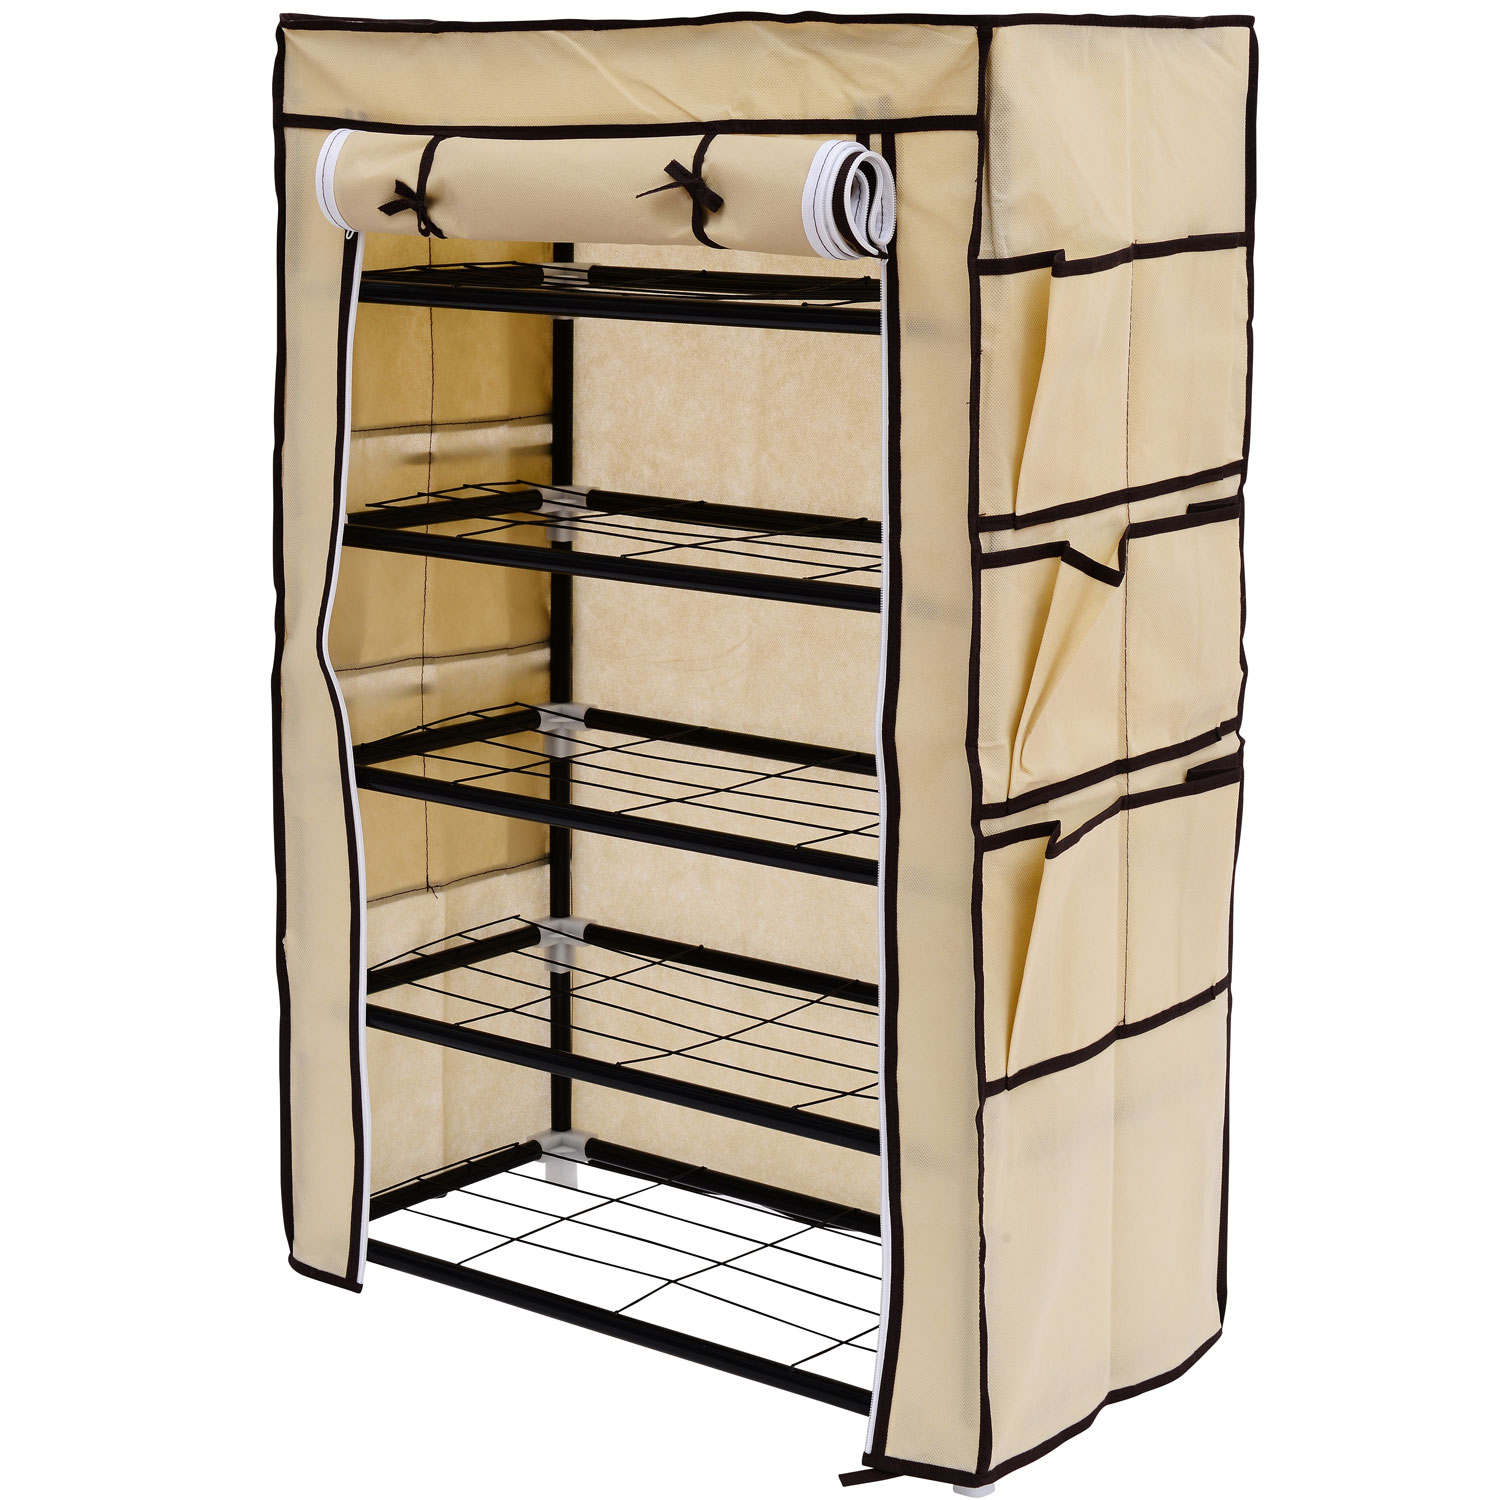 HomCom Home Portable Closet Storage Shelf Shoe Rack   Cream   Walmart.com